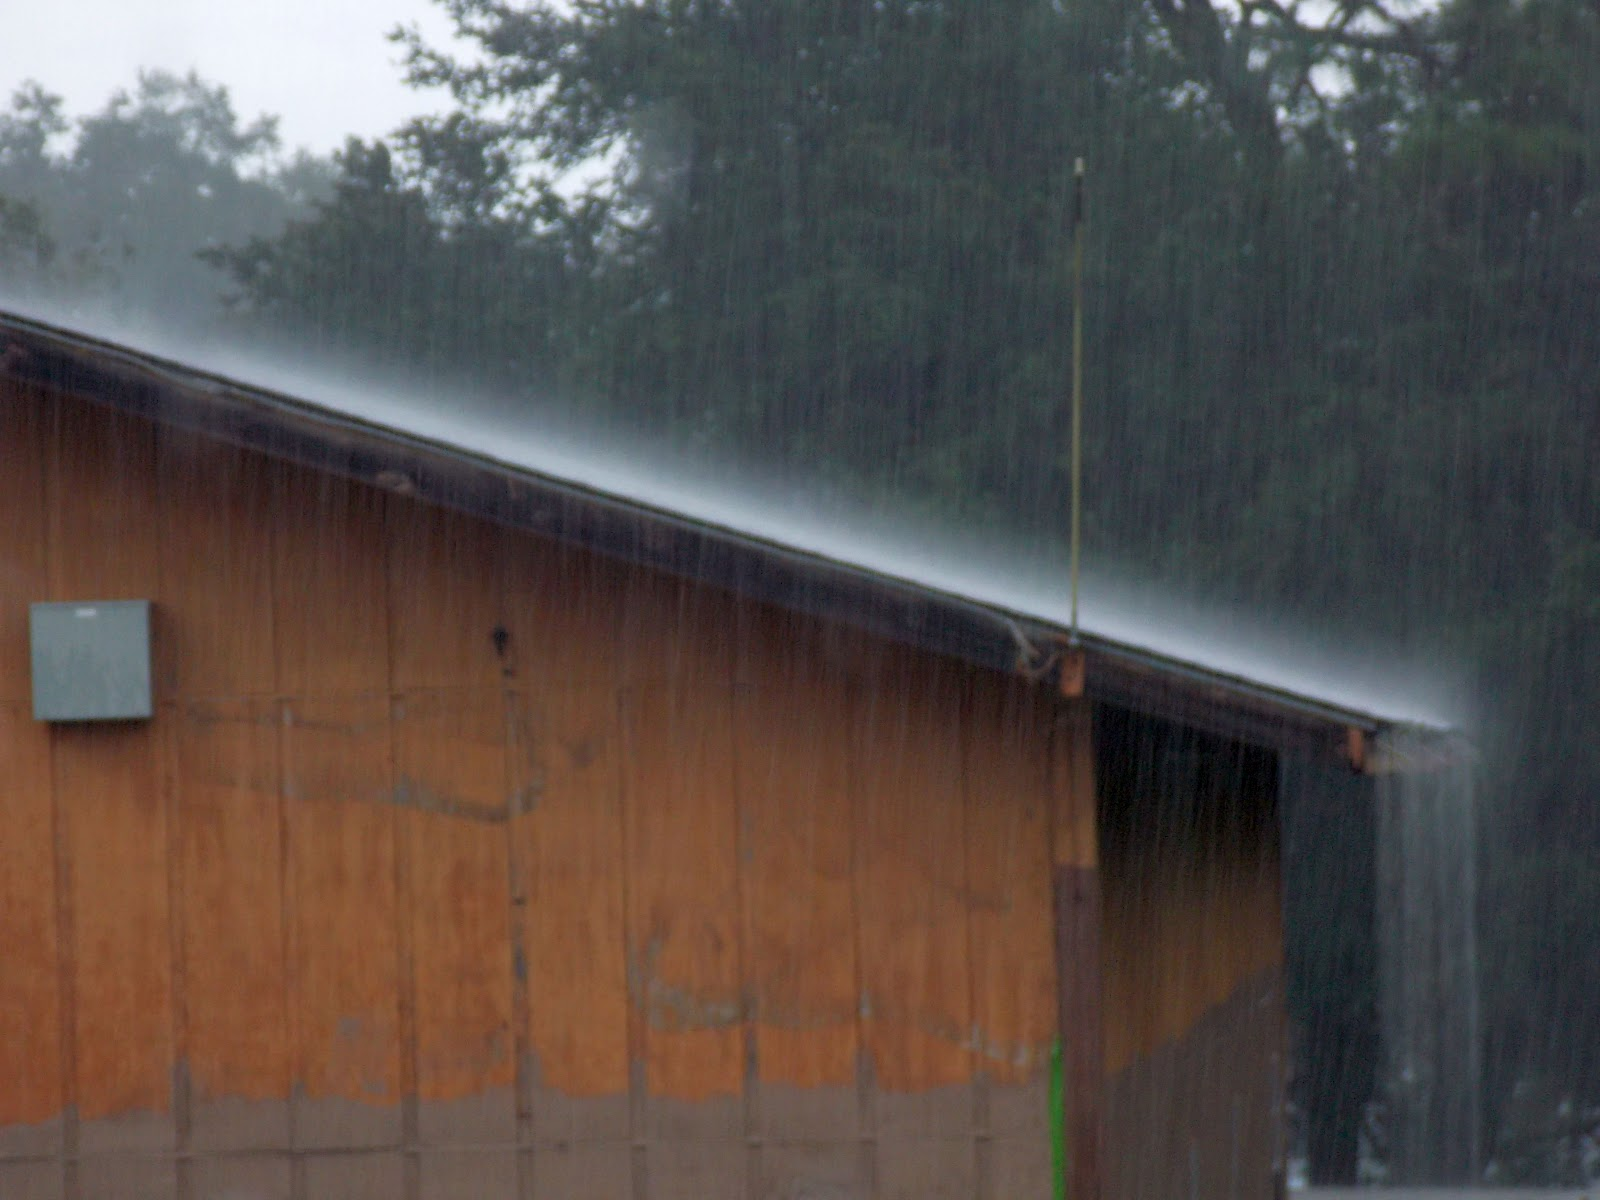 A wooden shed in the rain. Water streams off the eaves which are far enough out that the walls are protected.